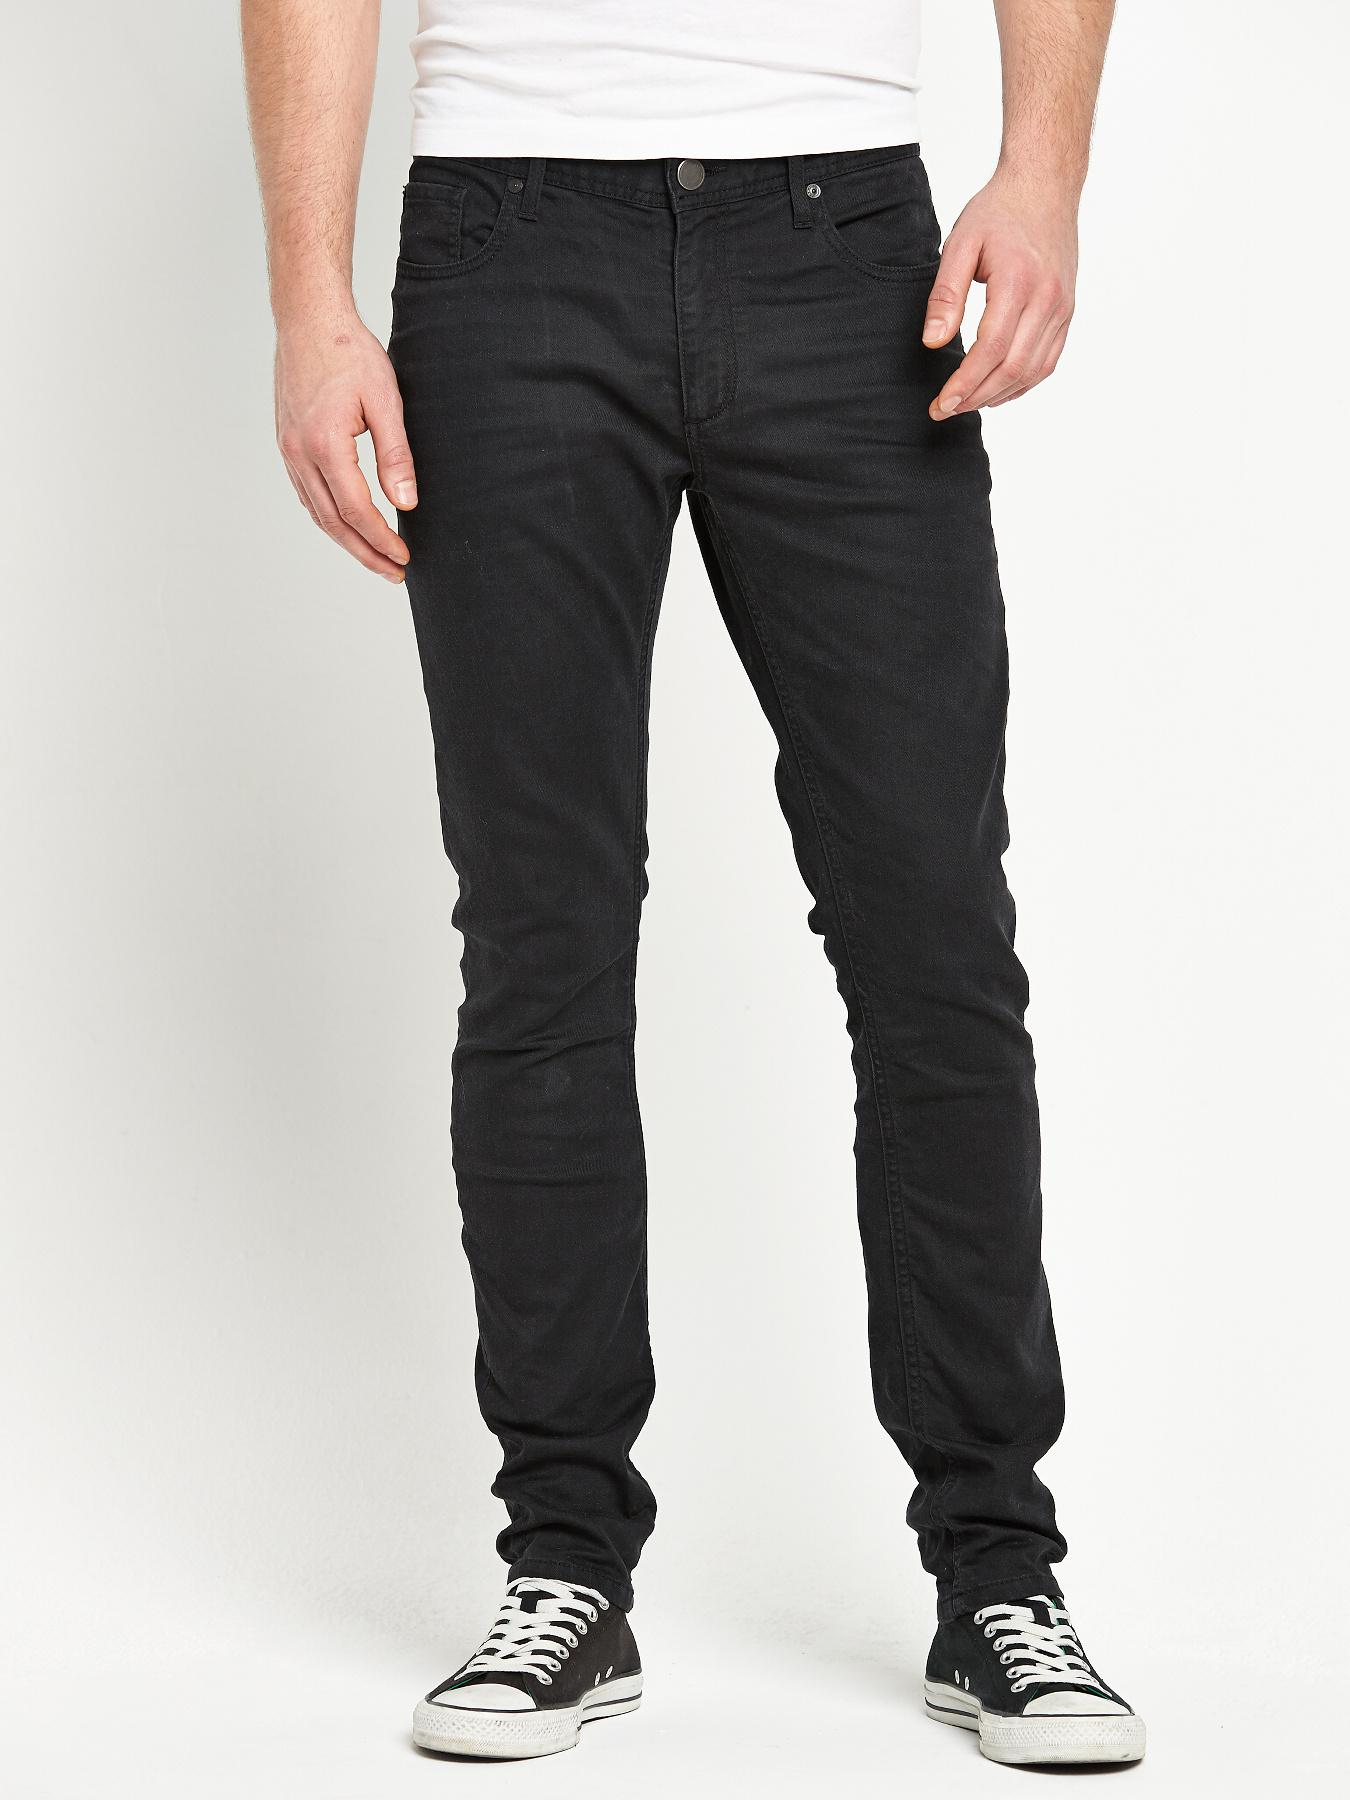 Jack & Jones Mens Tim Slim Fit Jeans - Black, Black